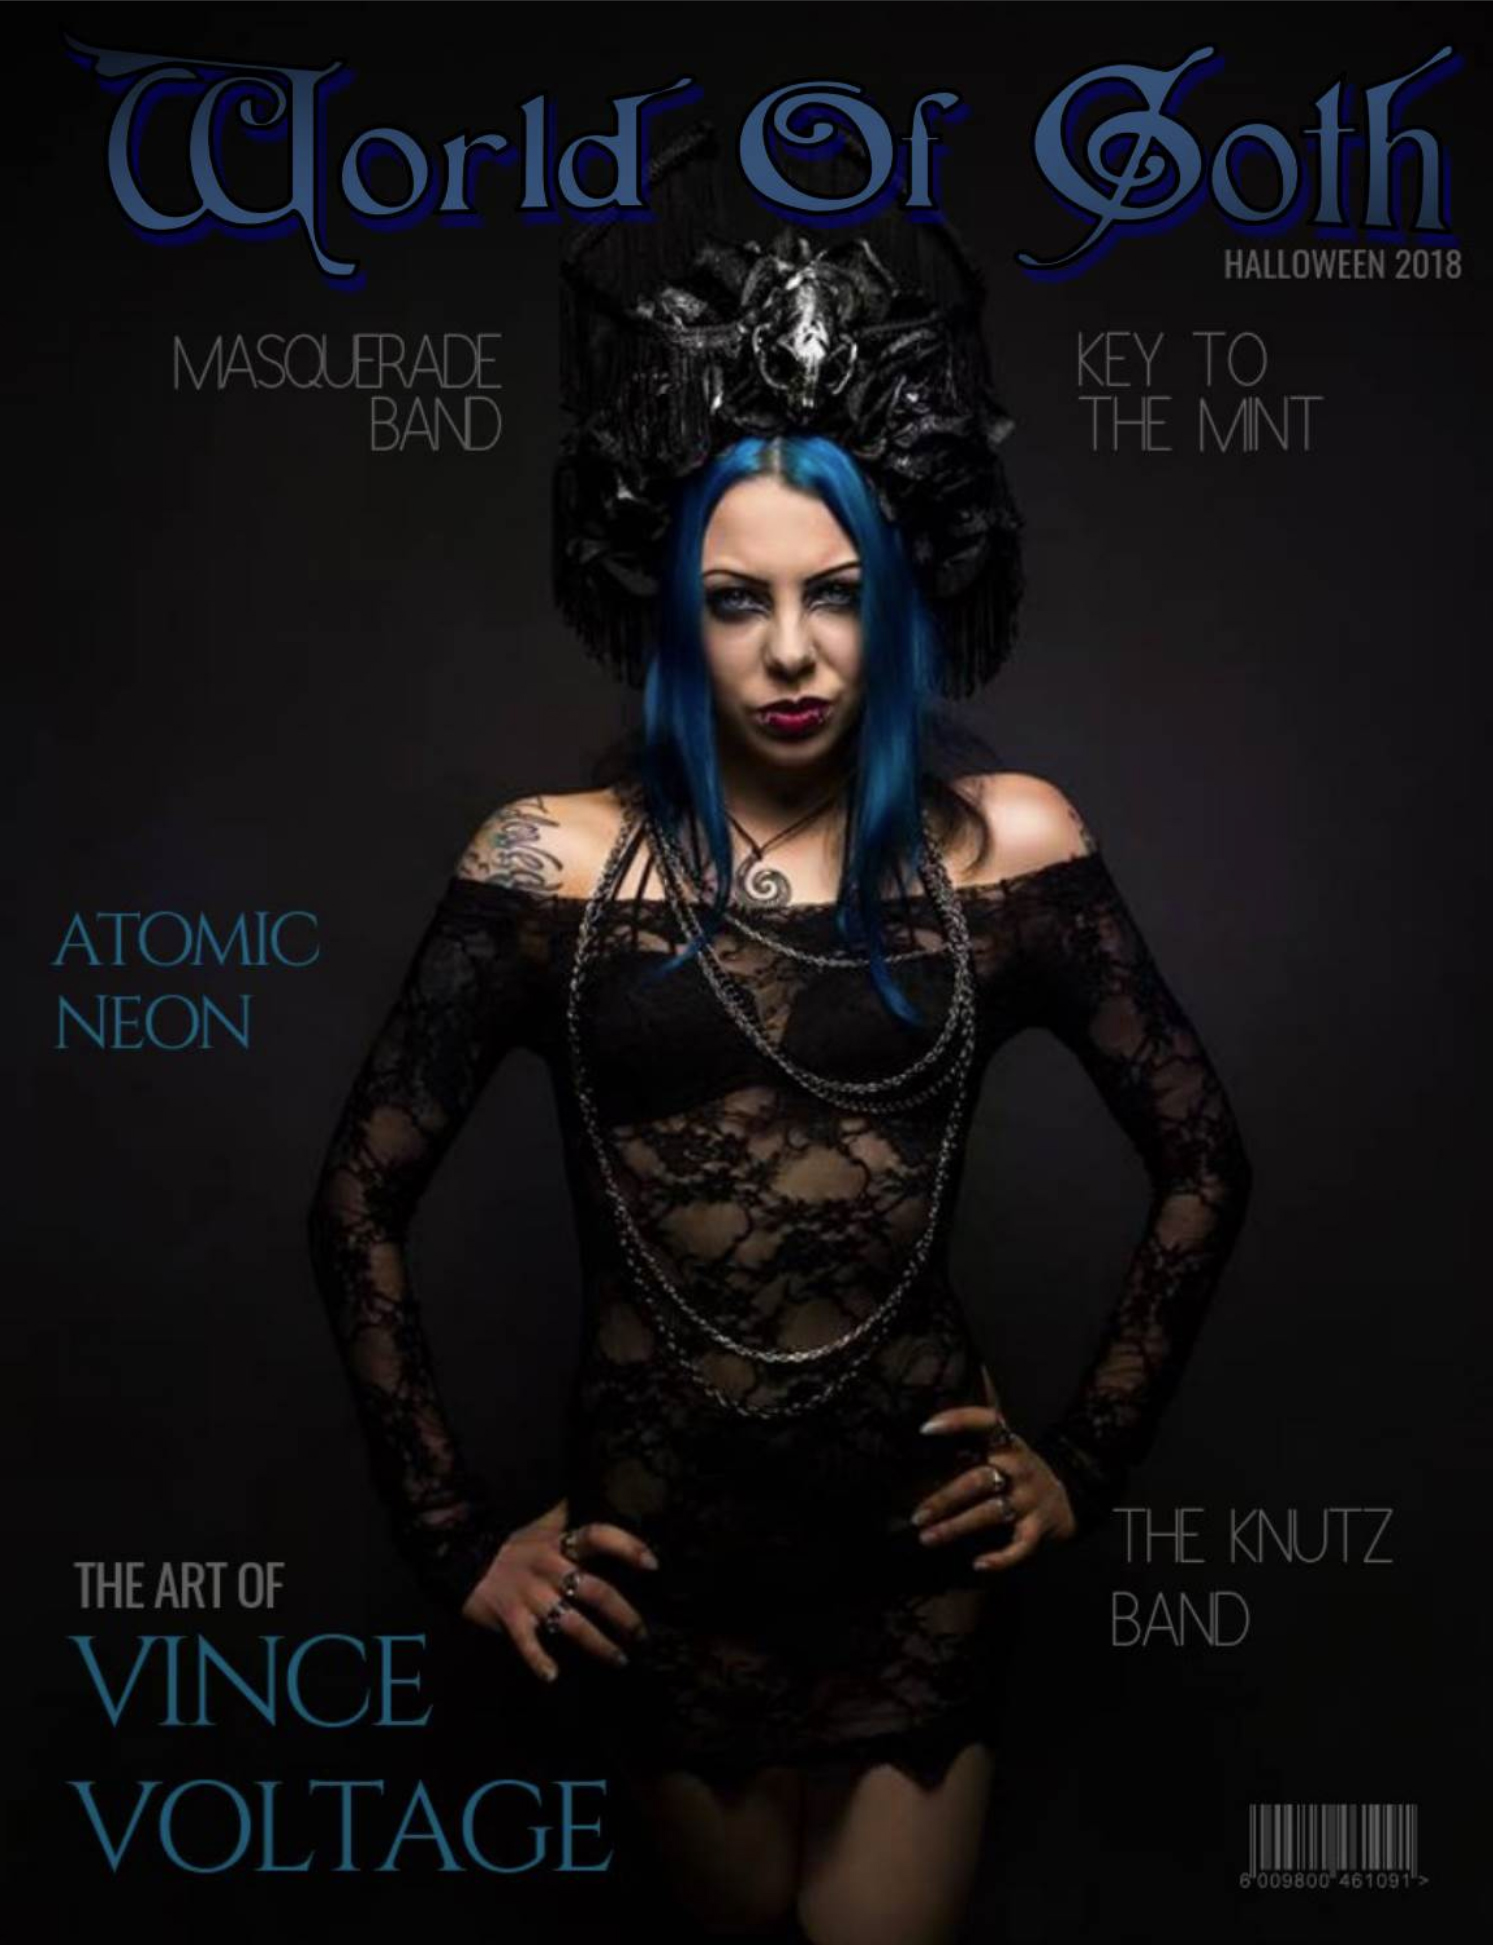 World of Gothic Magazin Cover